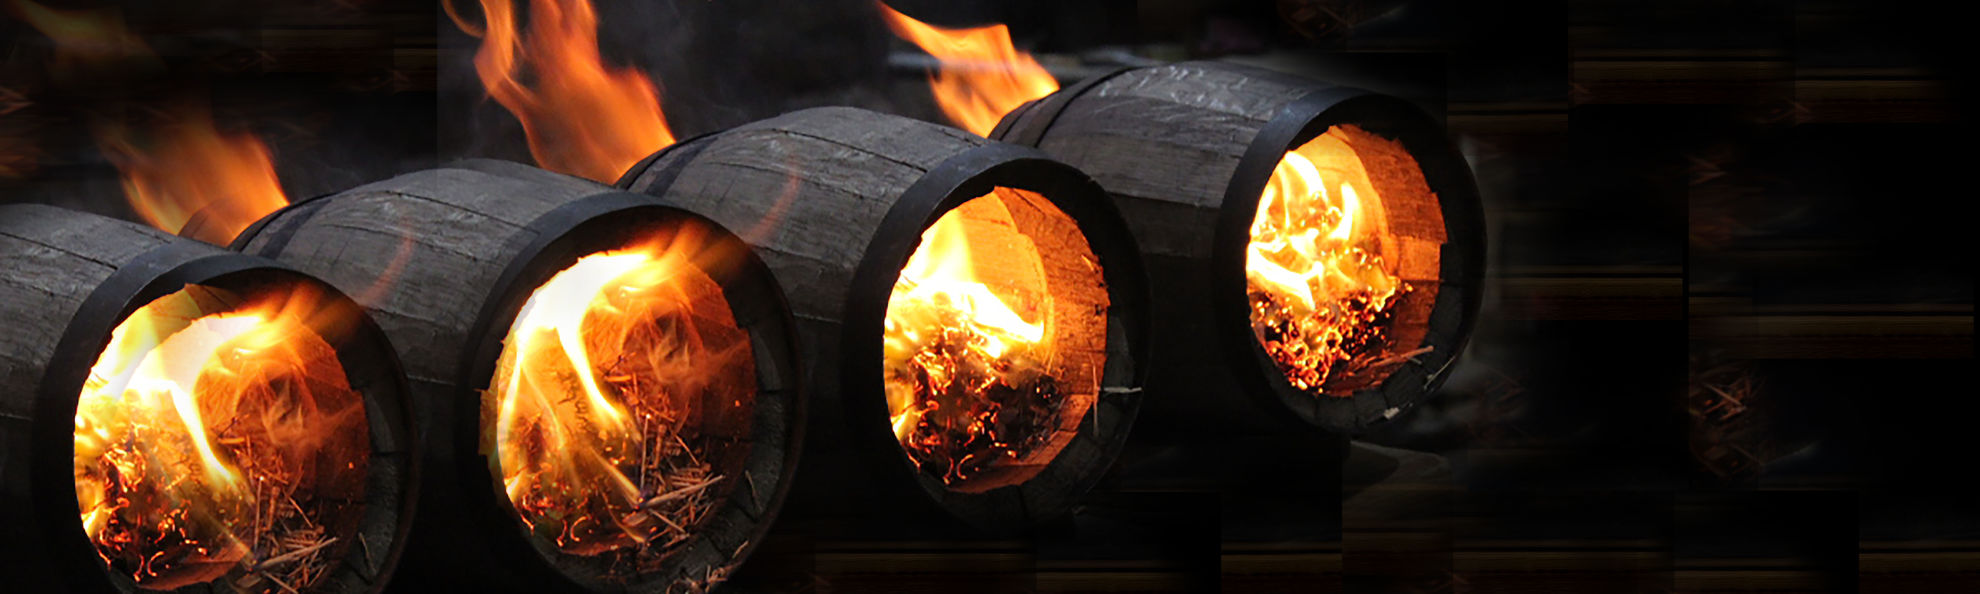 oak barrels being charred